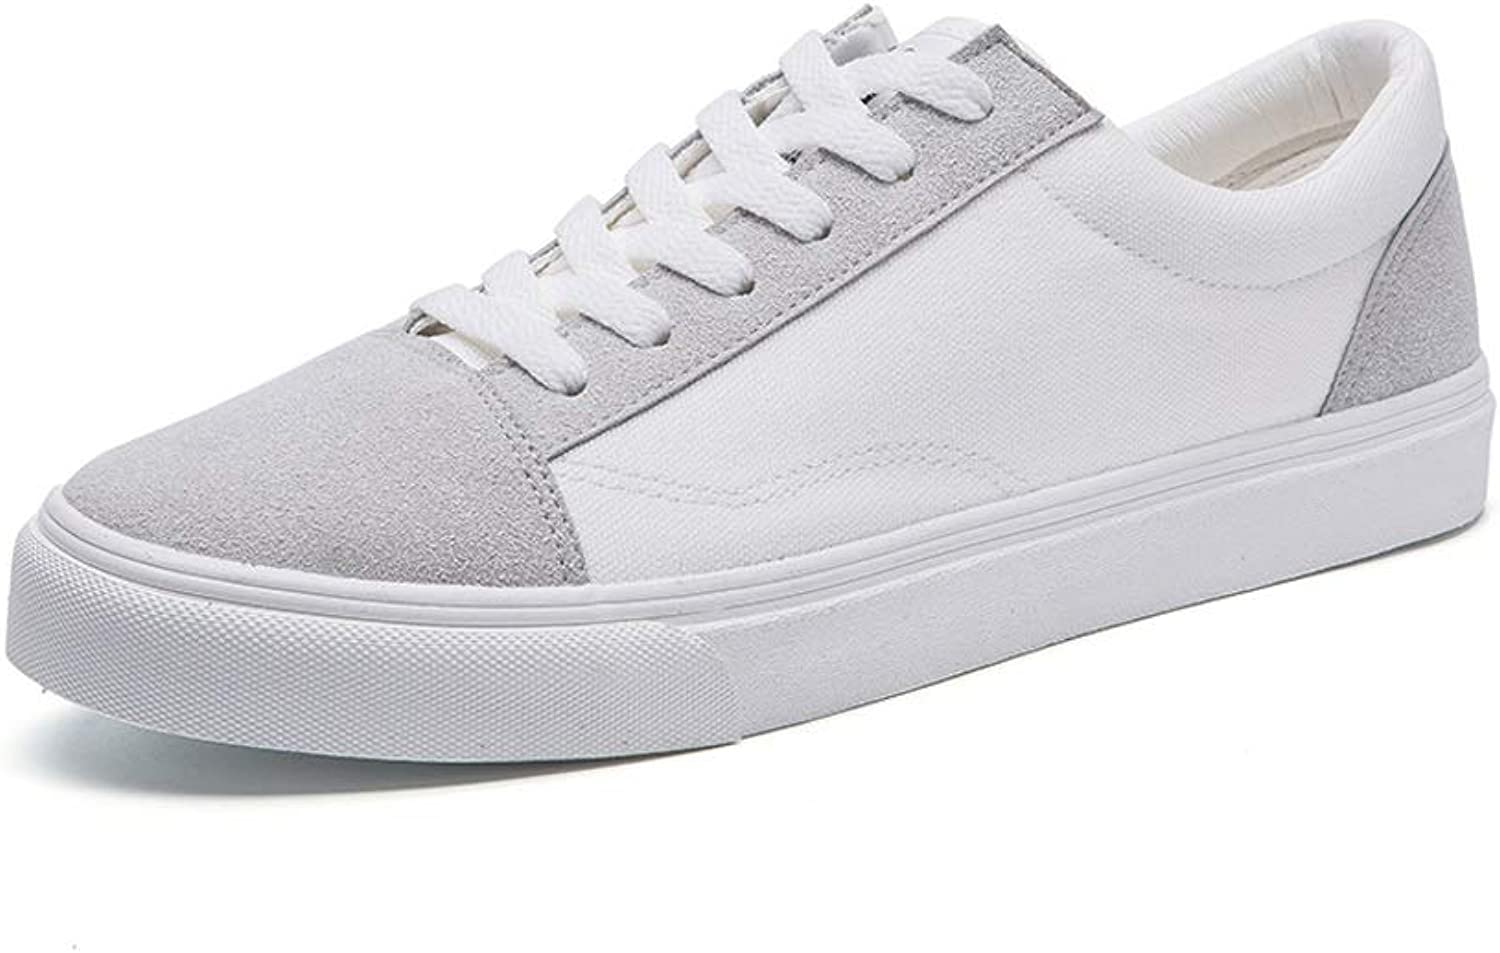 Ailj Spring Men's Street White shoes, Canvas Upper Korean Version of Breathable Low-top Casual shoes Classic Low-top Sneakers